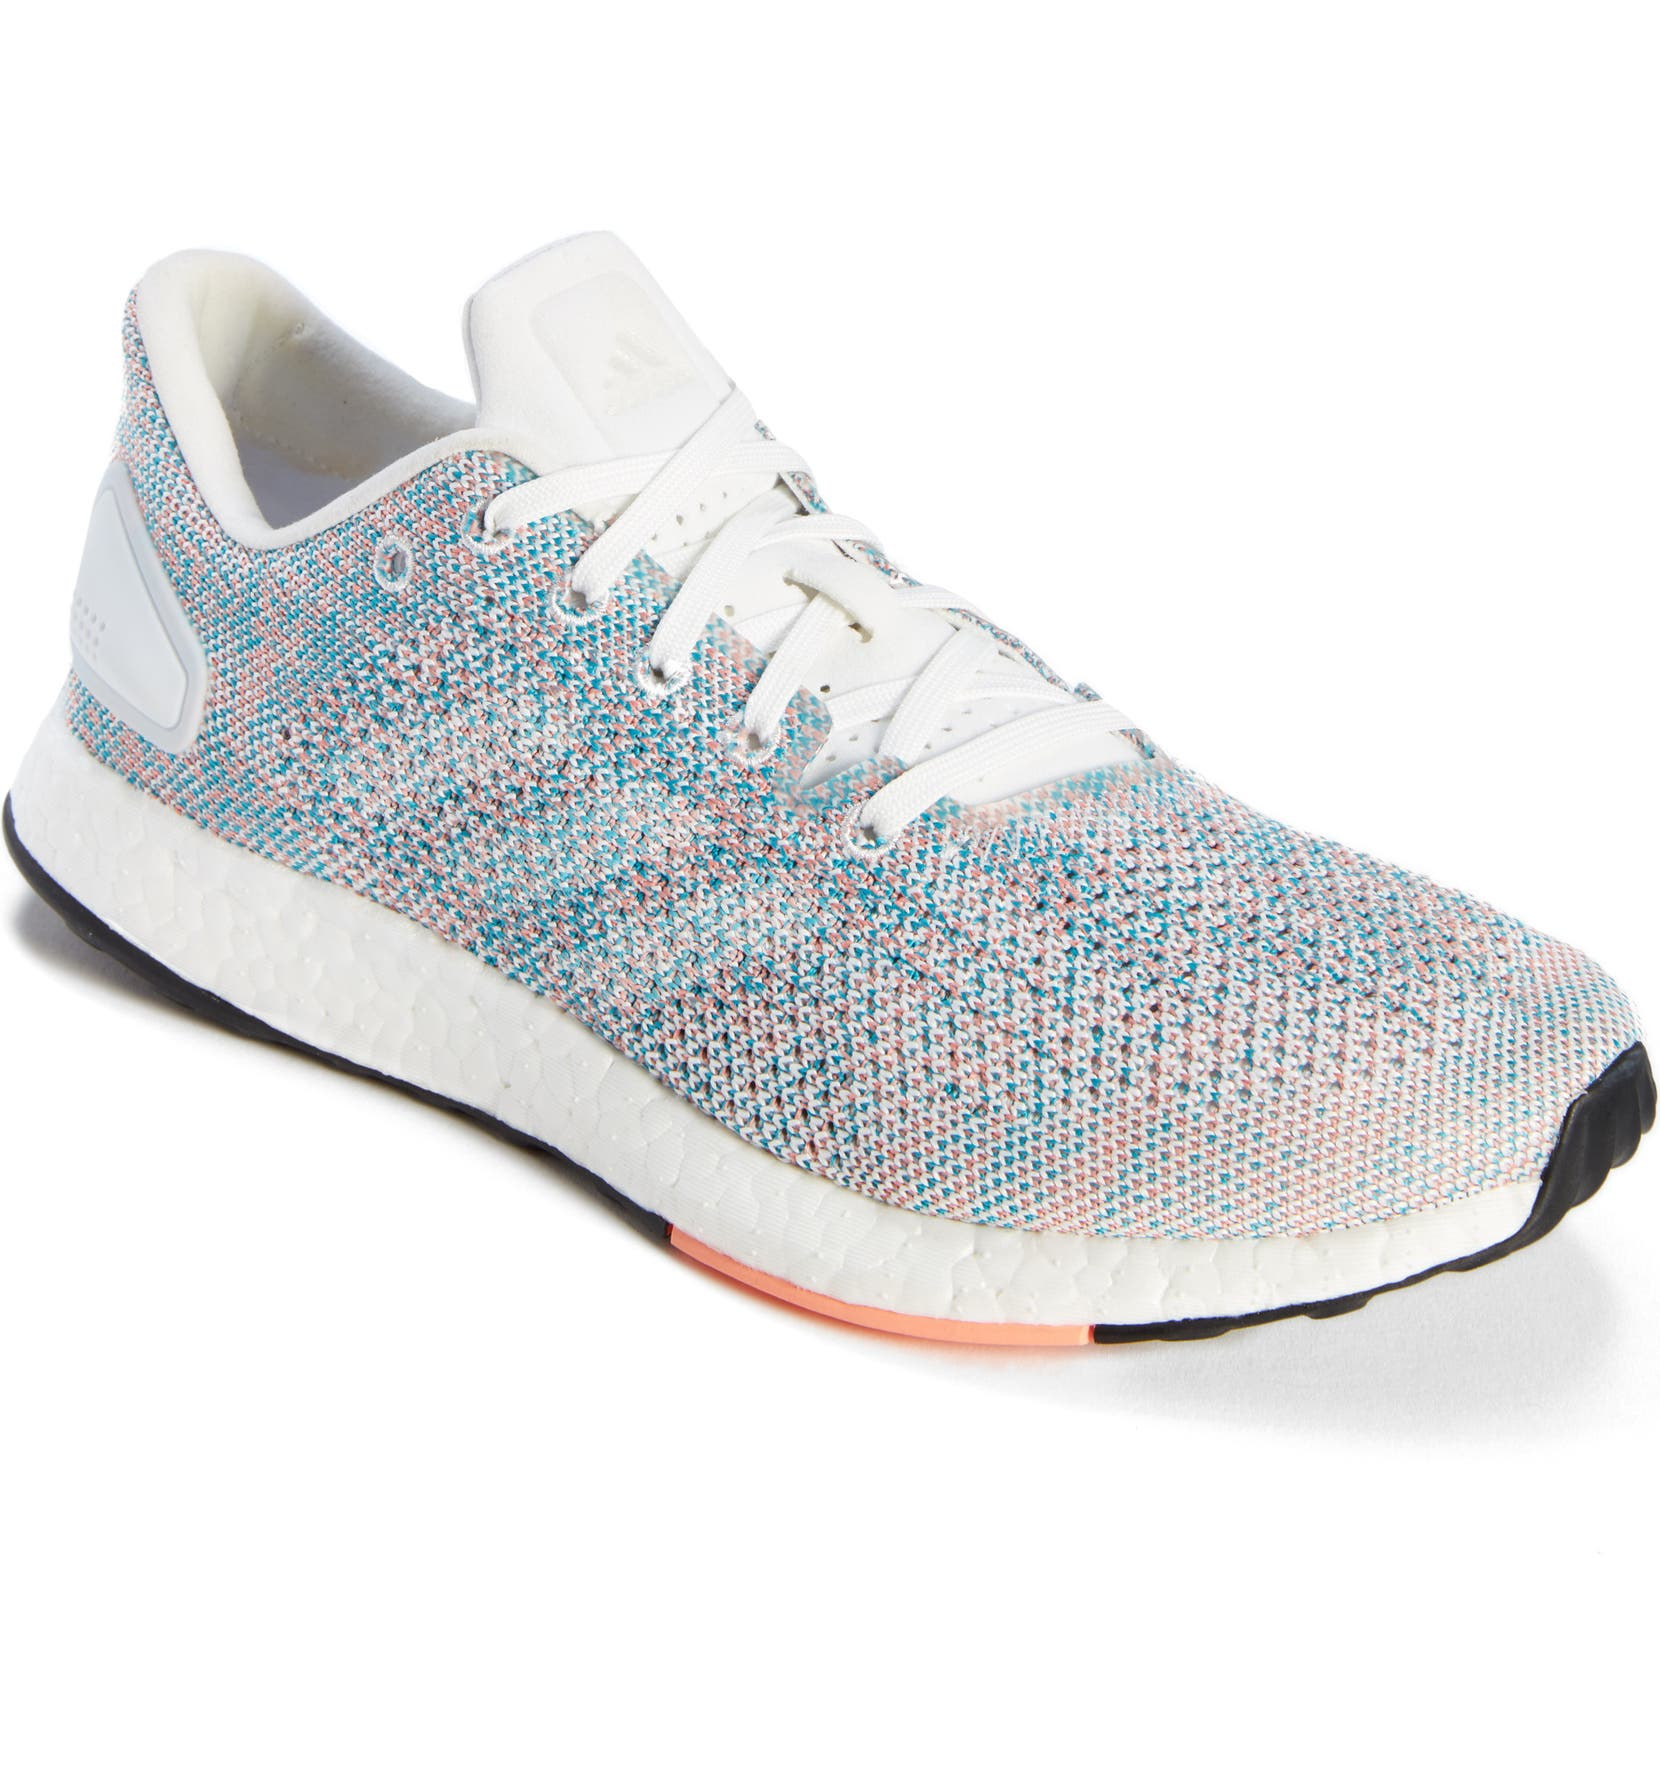 in stock 9e2df ef93f adidas PureBoost DPR Running Shoe (Women)   Nordstrom